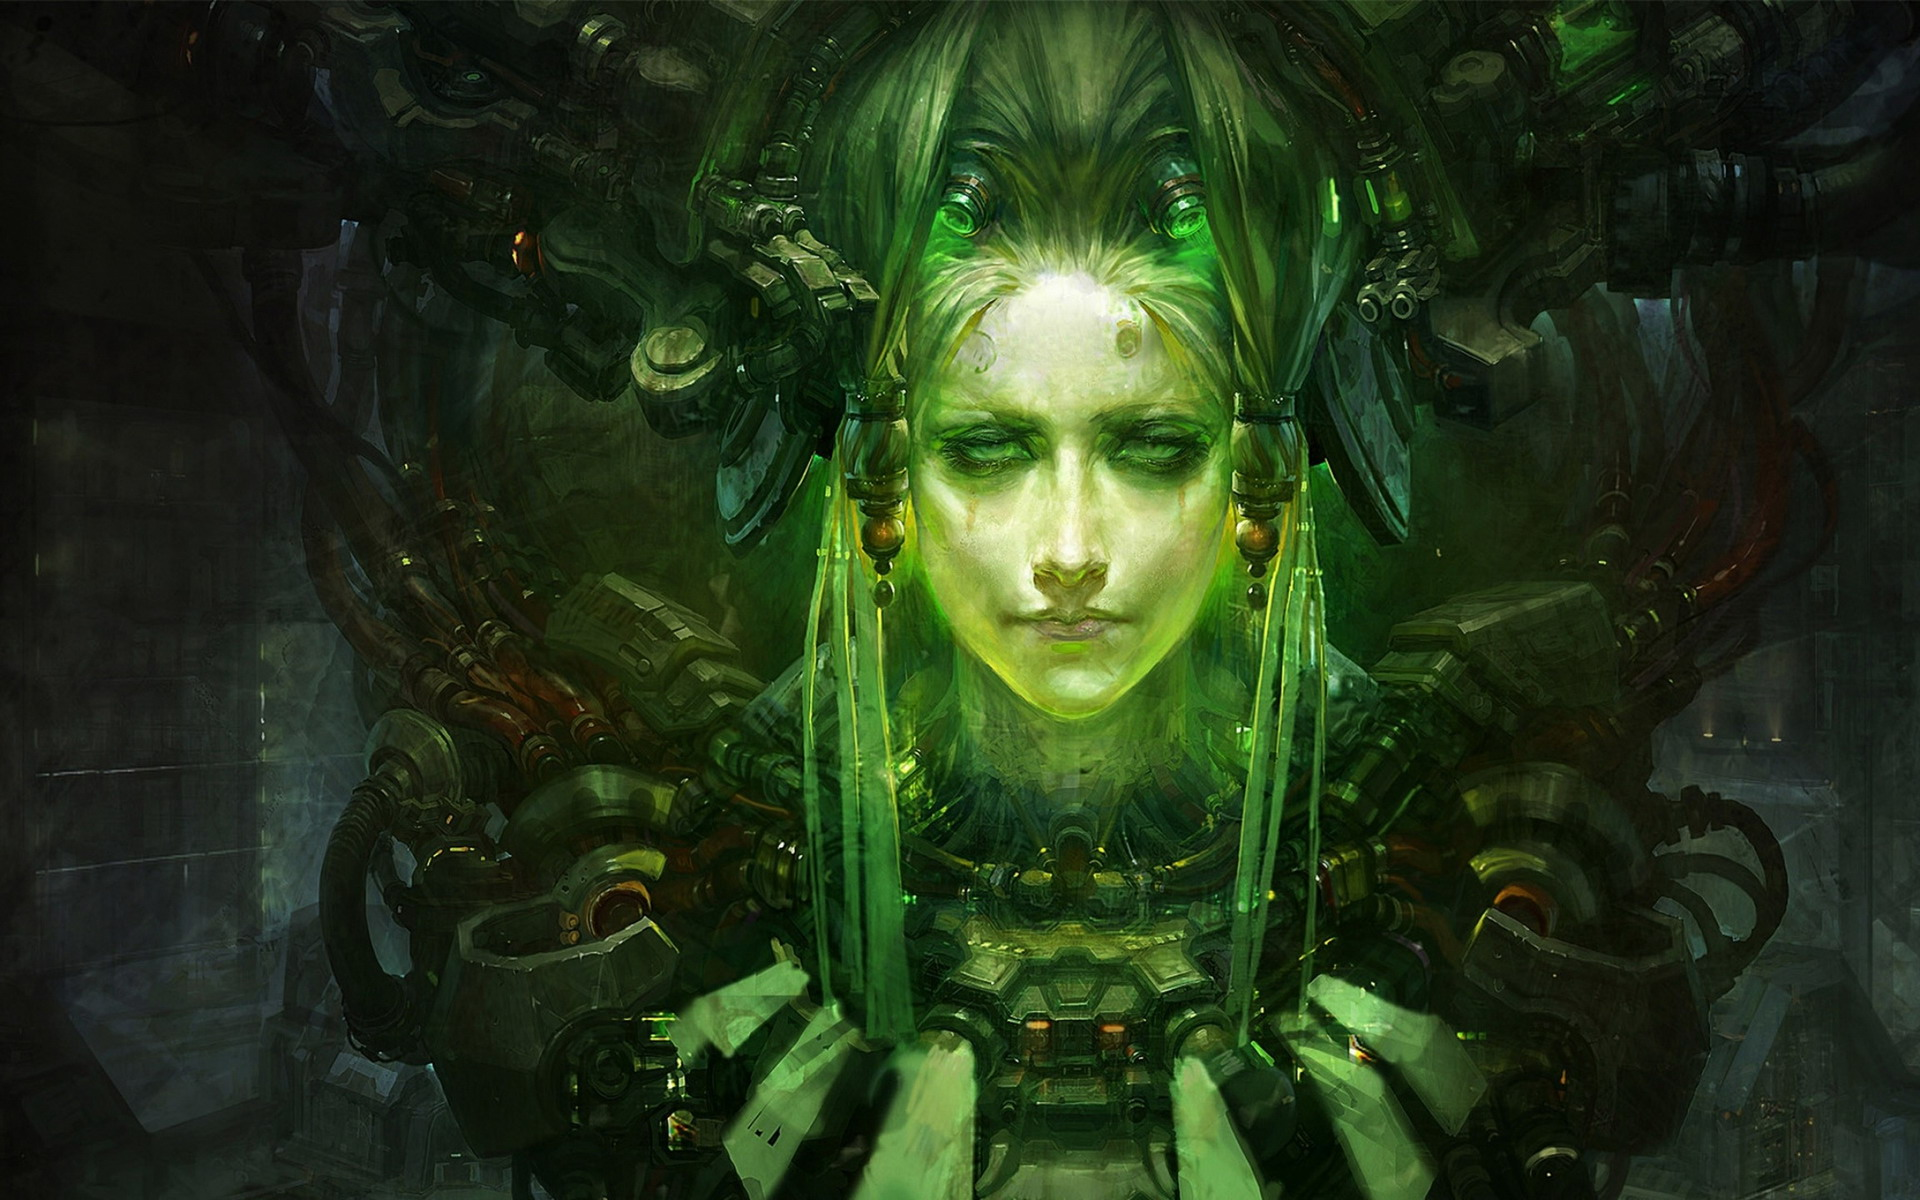 Fantasy Art Images High Definition 4 Thumb